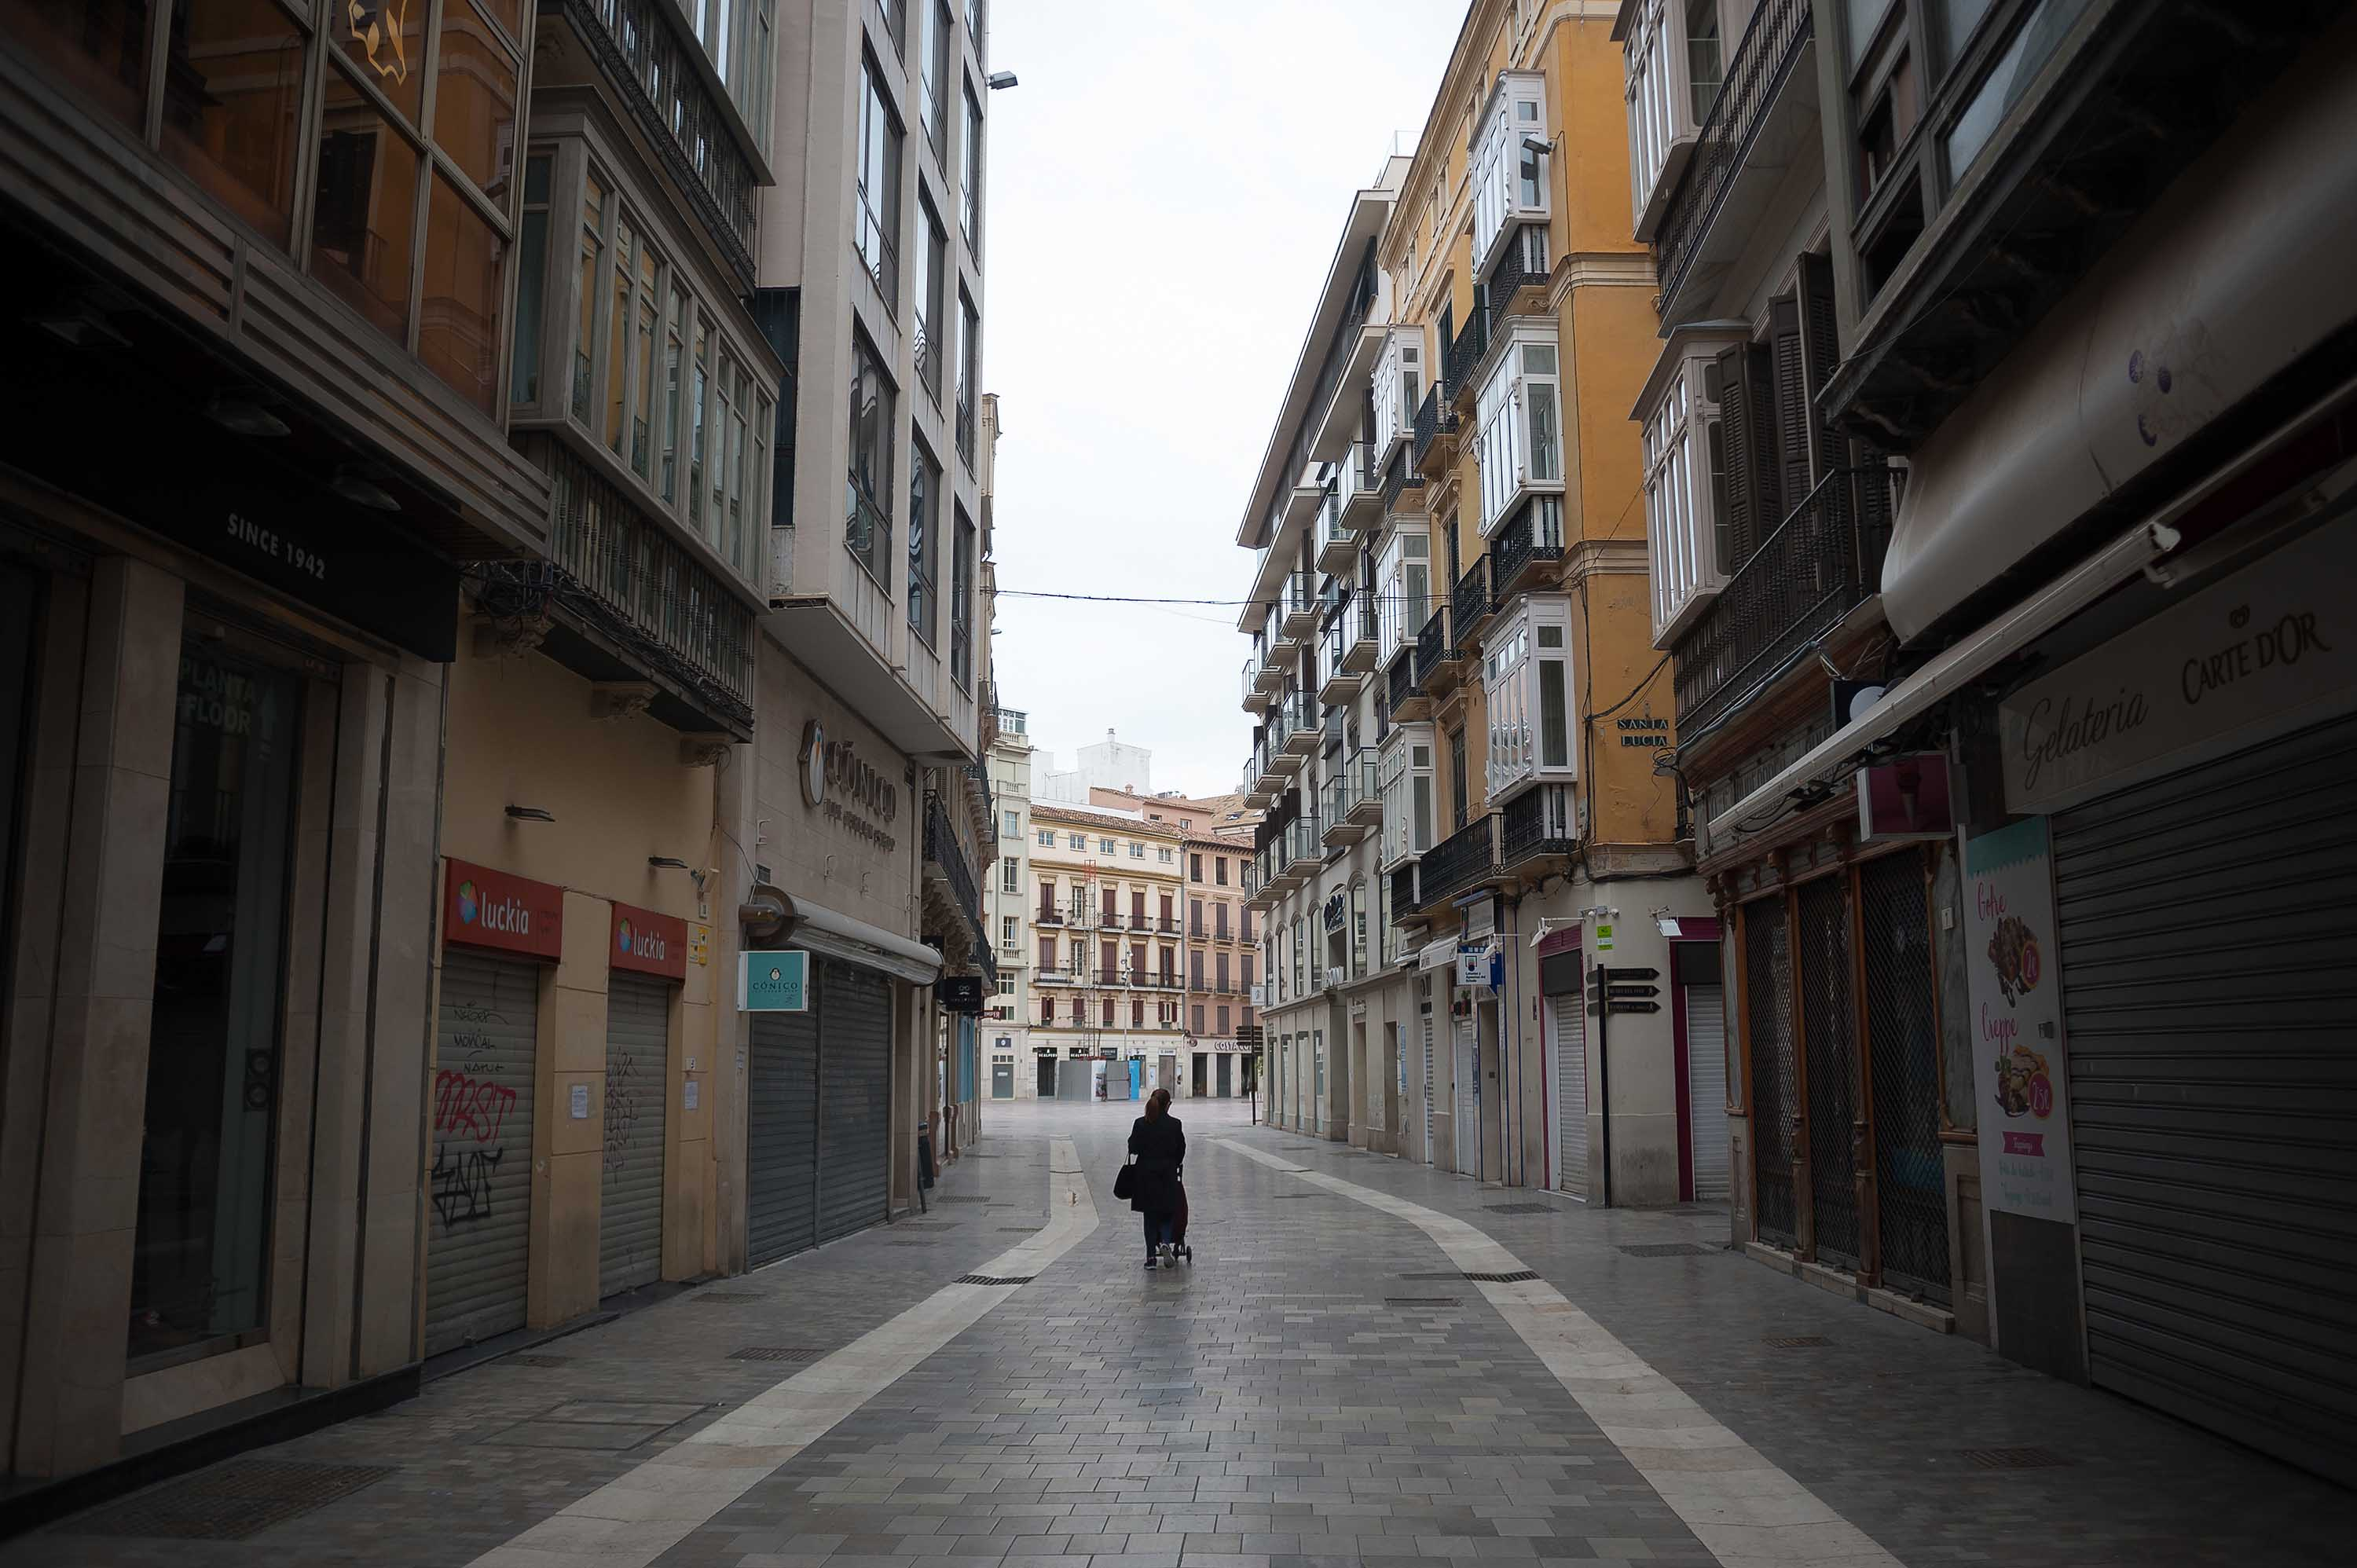 Shuttered businesses are seen on a street in Malaga, Spain, during lockdown on April 4.